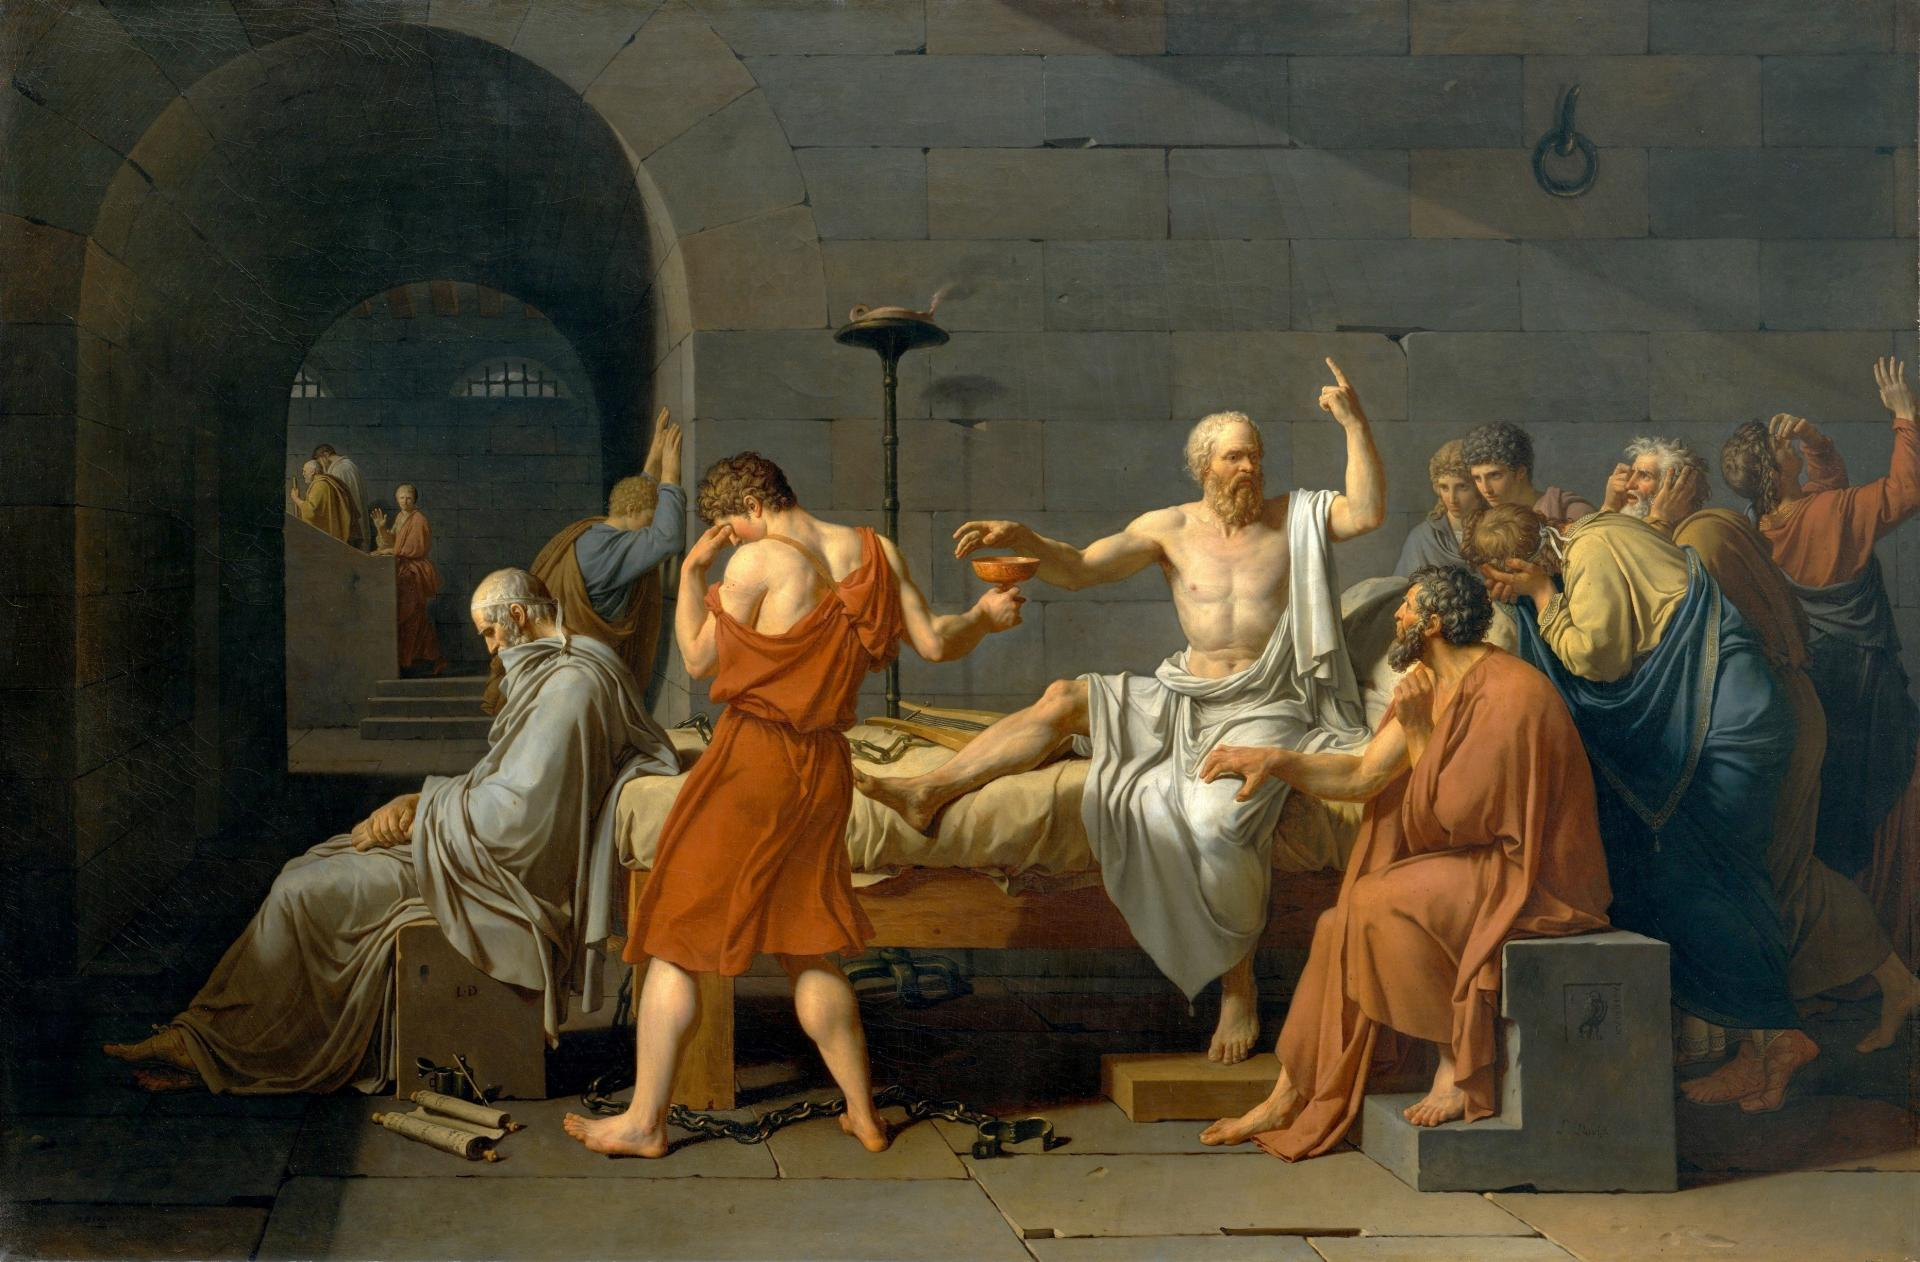 a biography of hippocrates a greek physician and a discussion of his ideas